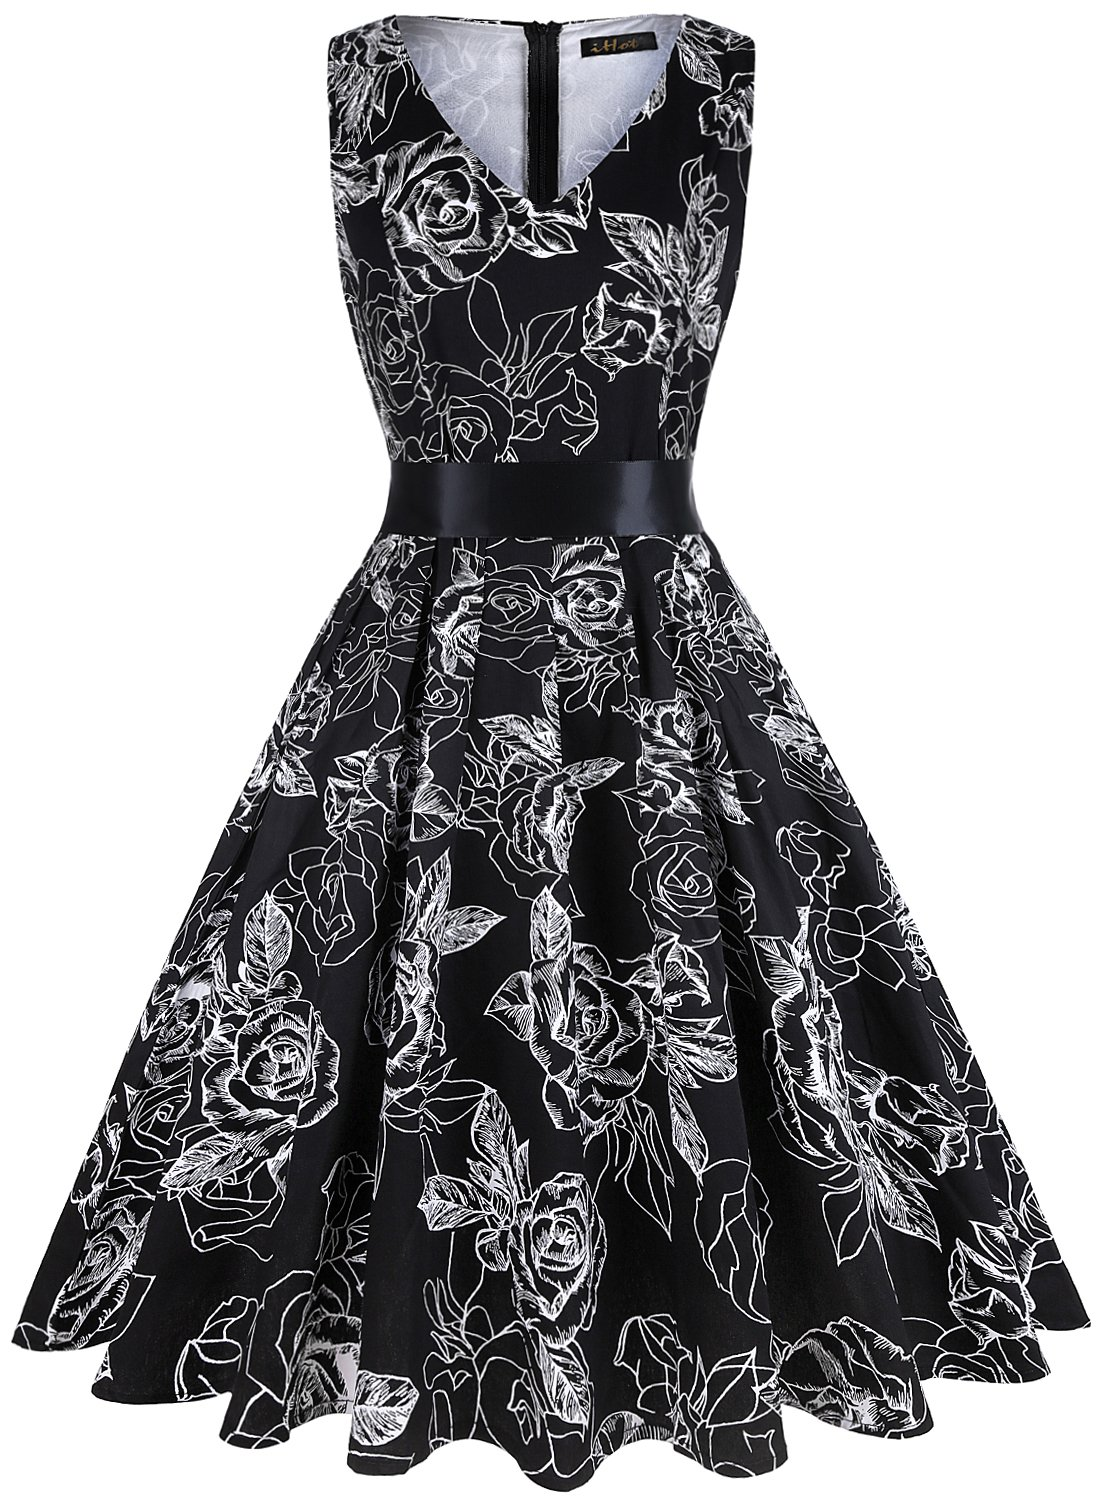 ihot Vintage Tea Dress 1950's Floral Spring Garden Retro Swing Prom Party Cocktail Dress for Women by ihot